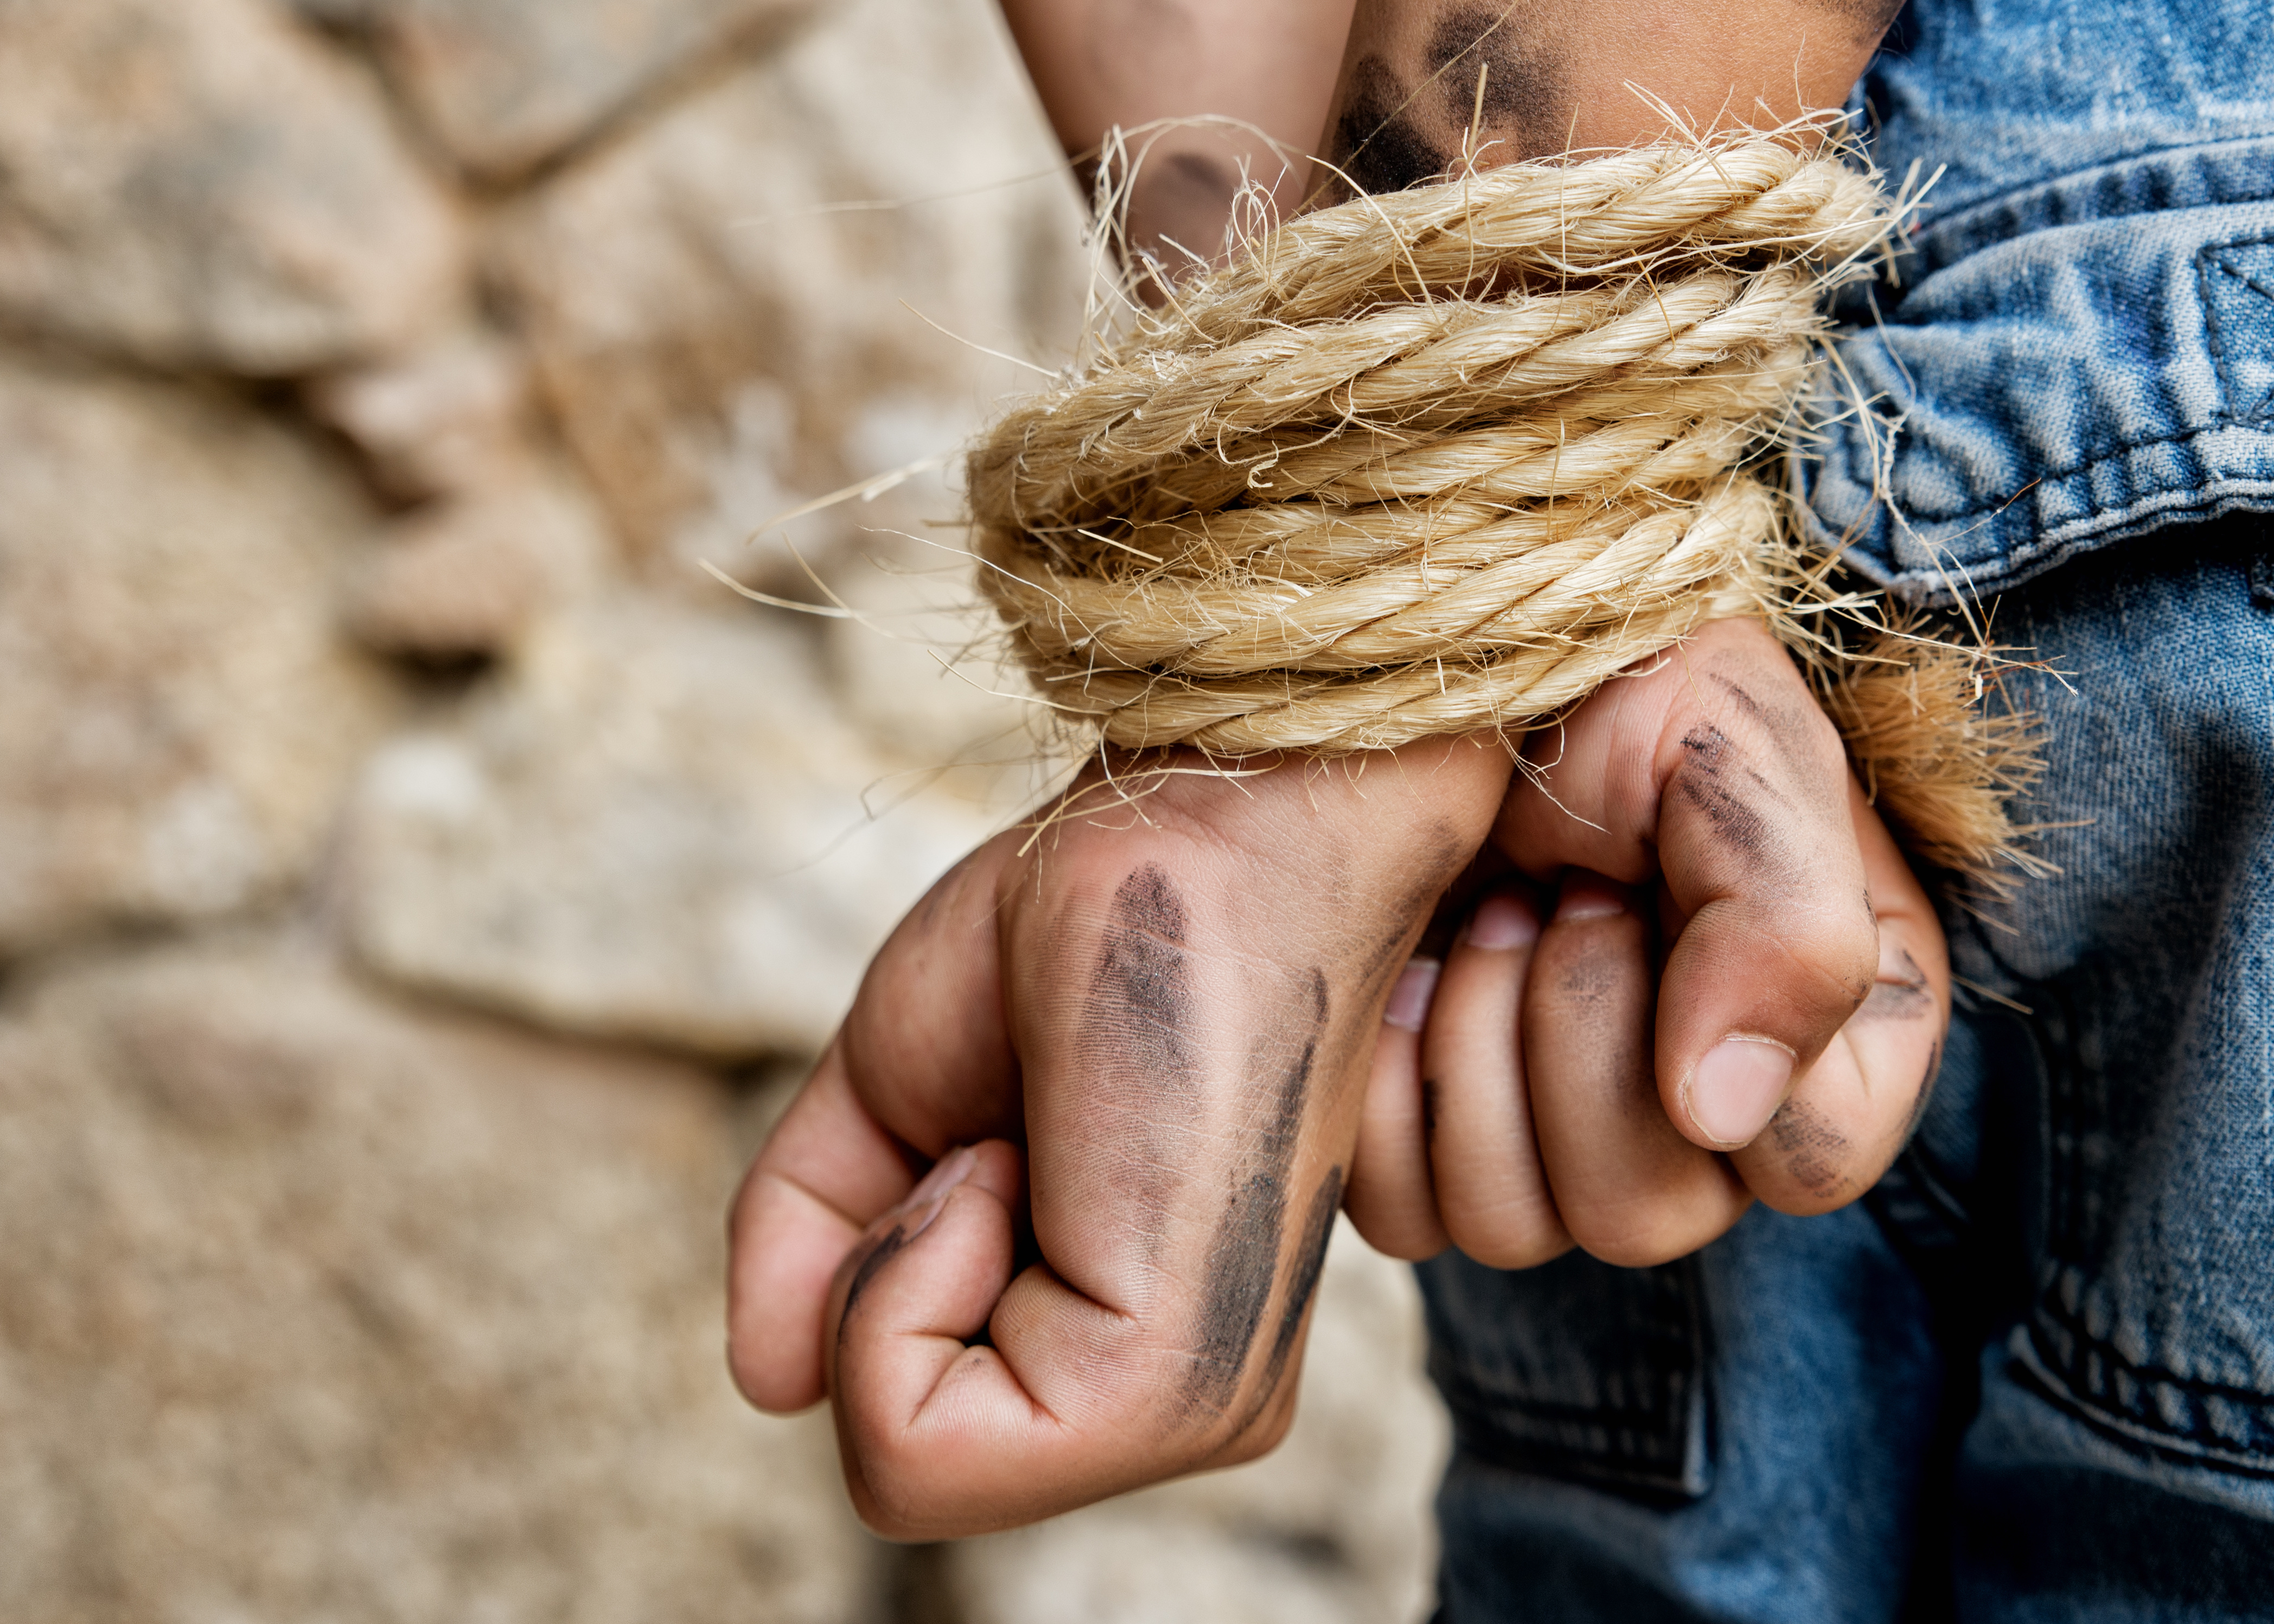 How On Earth Can You Ever Feel Fulfilled With Your Hands Tied Behind Your Back?